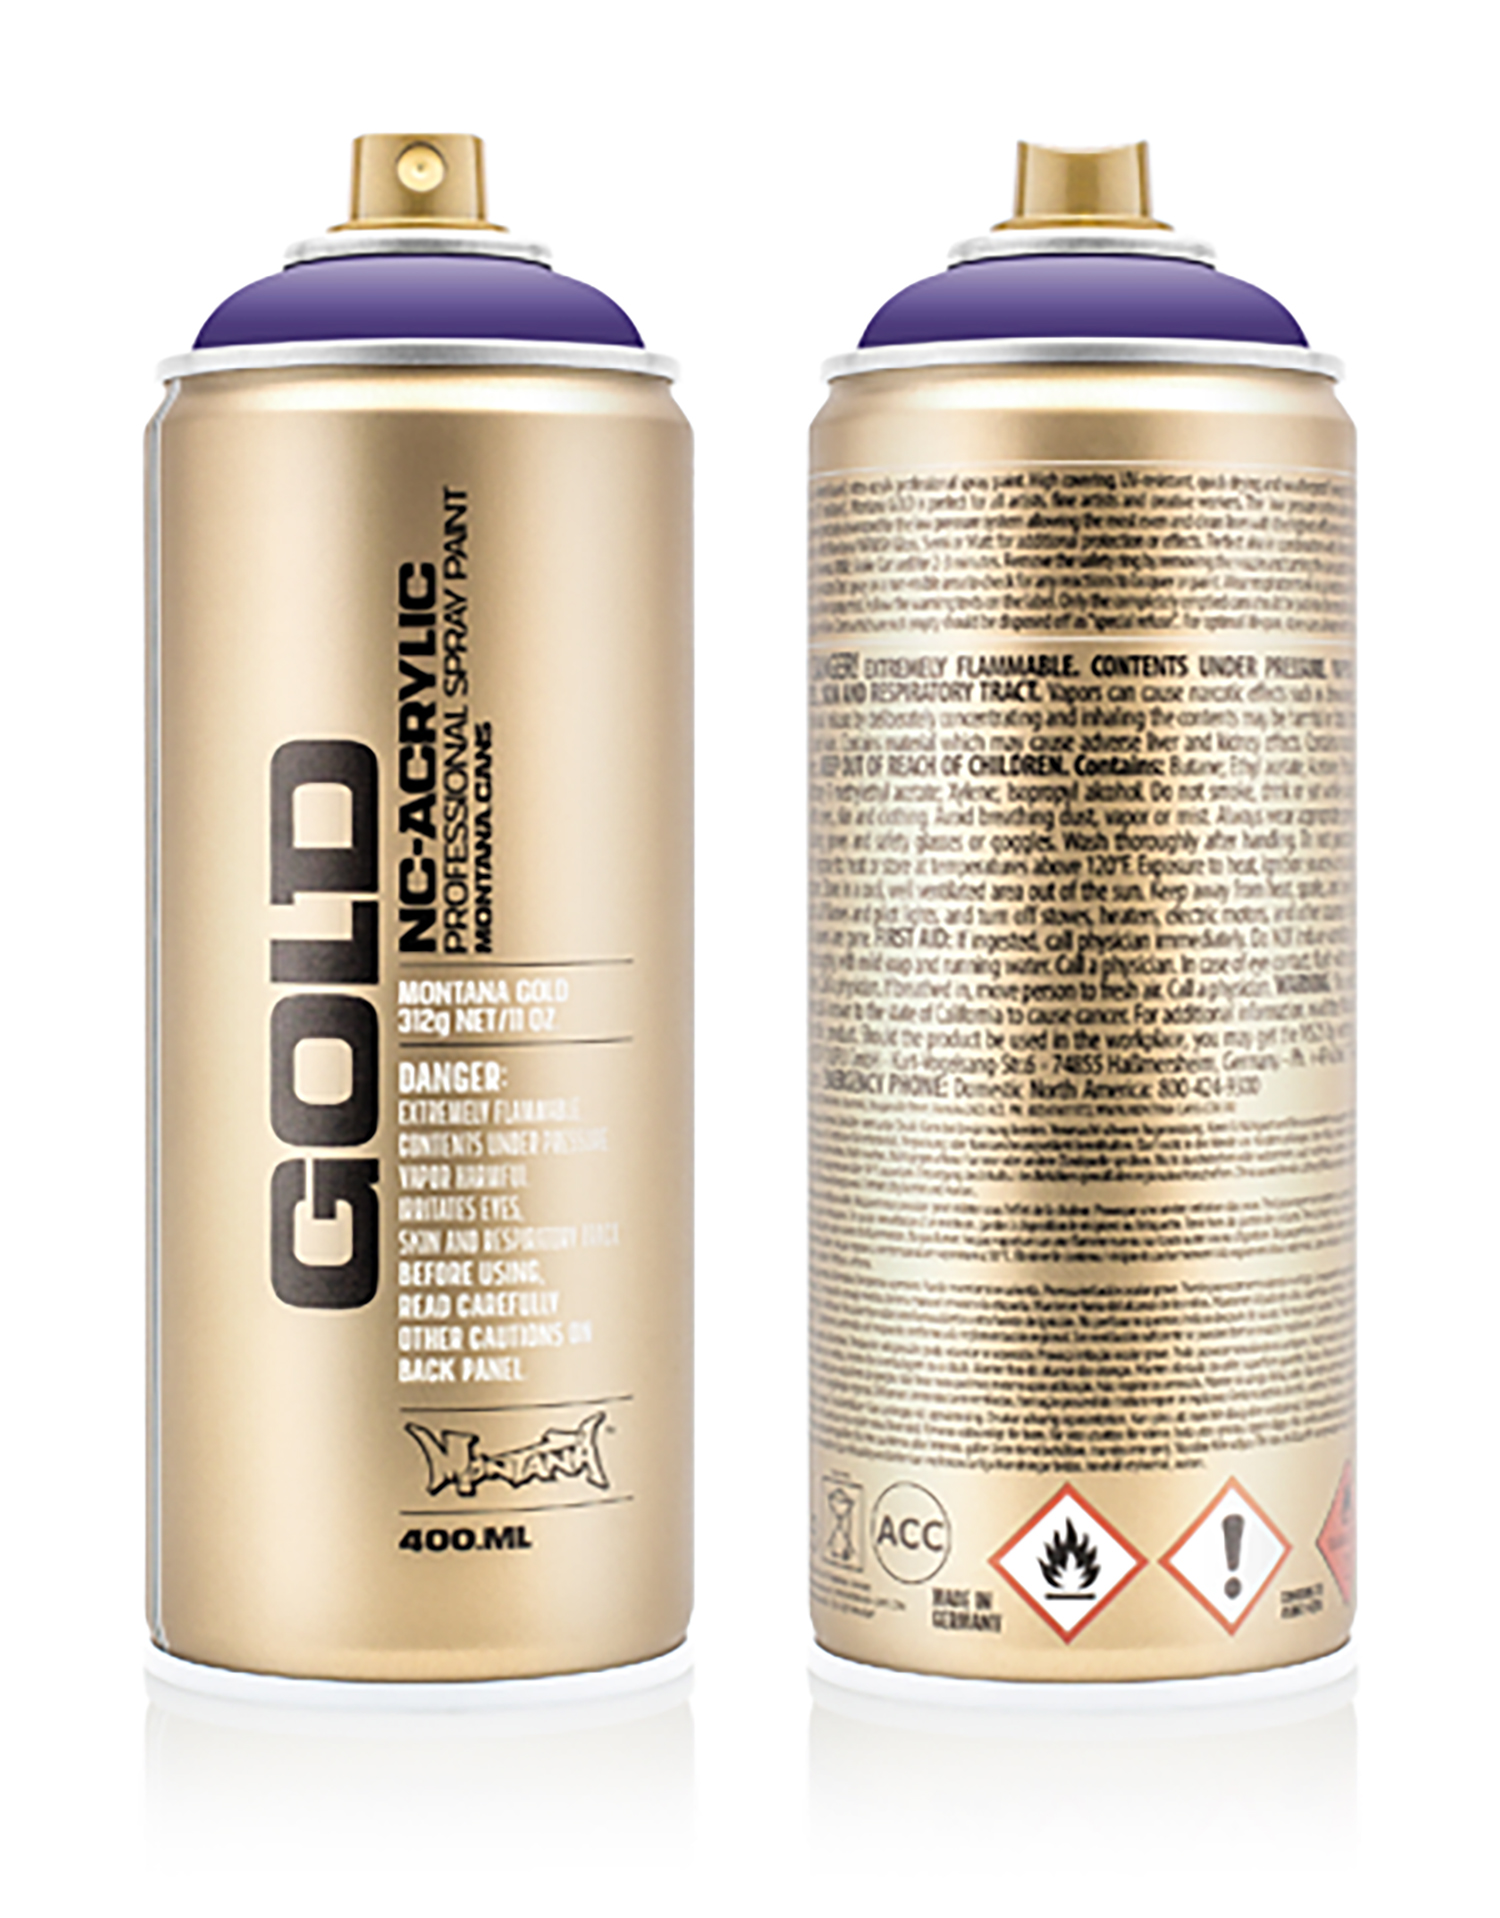 MONTANA-GOLD-SPRAY-400ML-G-4150